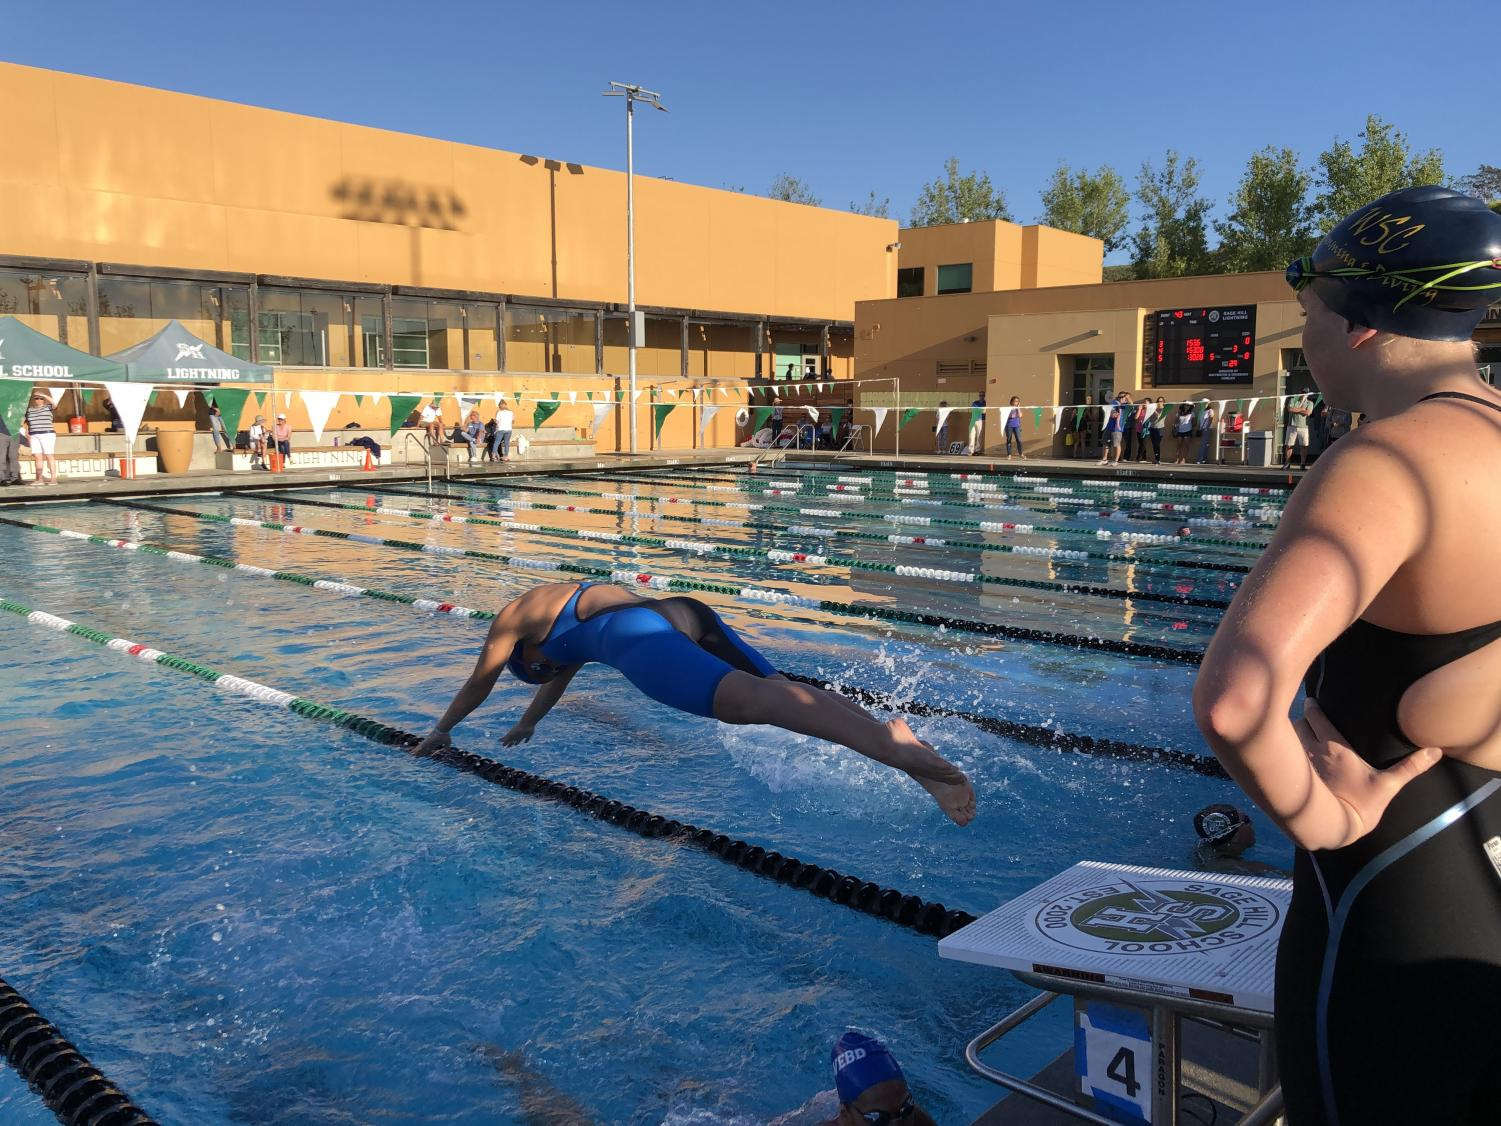 Madeline+Lilley+%28%2722%29+dives+into+her+race.